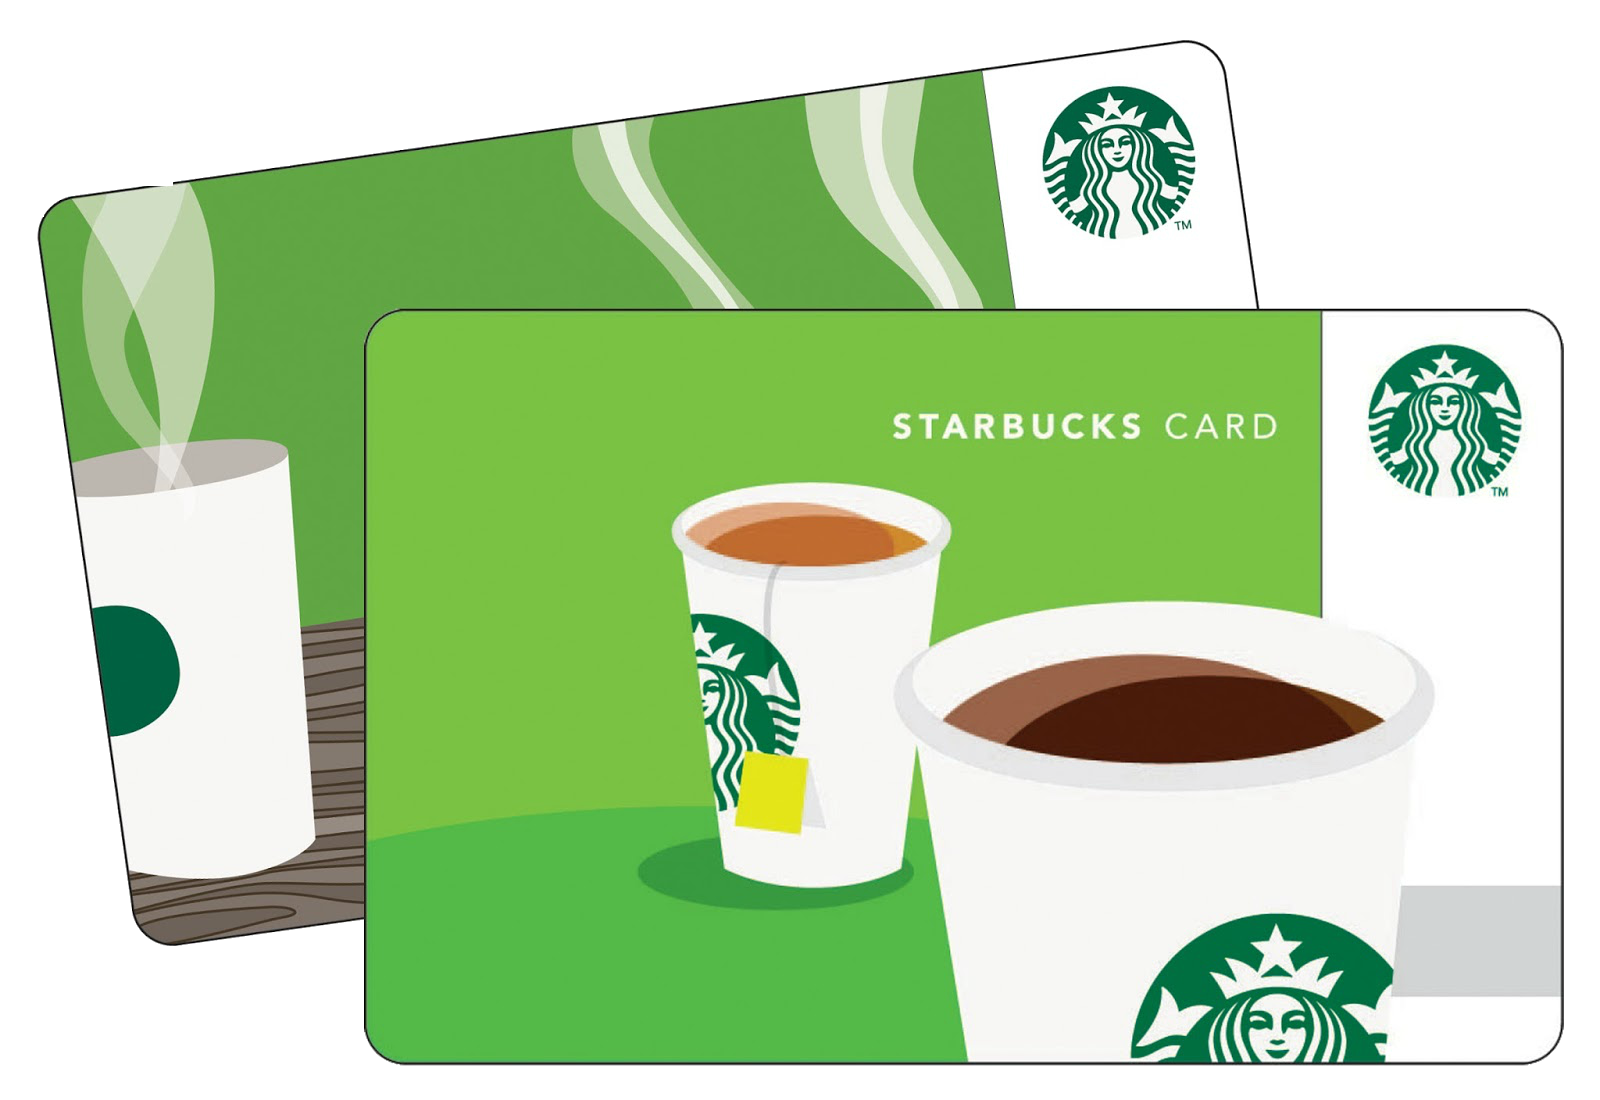 Referral money clipart transparent download Starbucks: Buy One $10 Gift Card, Get One Free! - Money Saving Mom ... transparent download